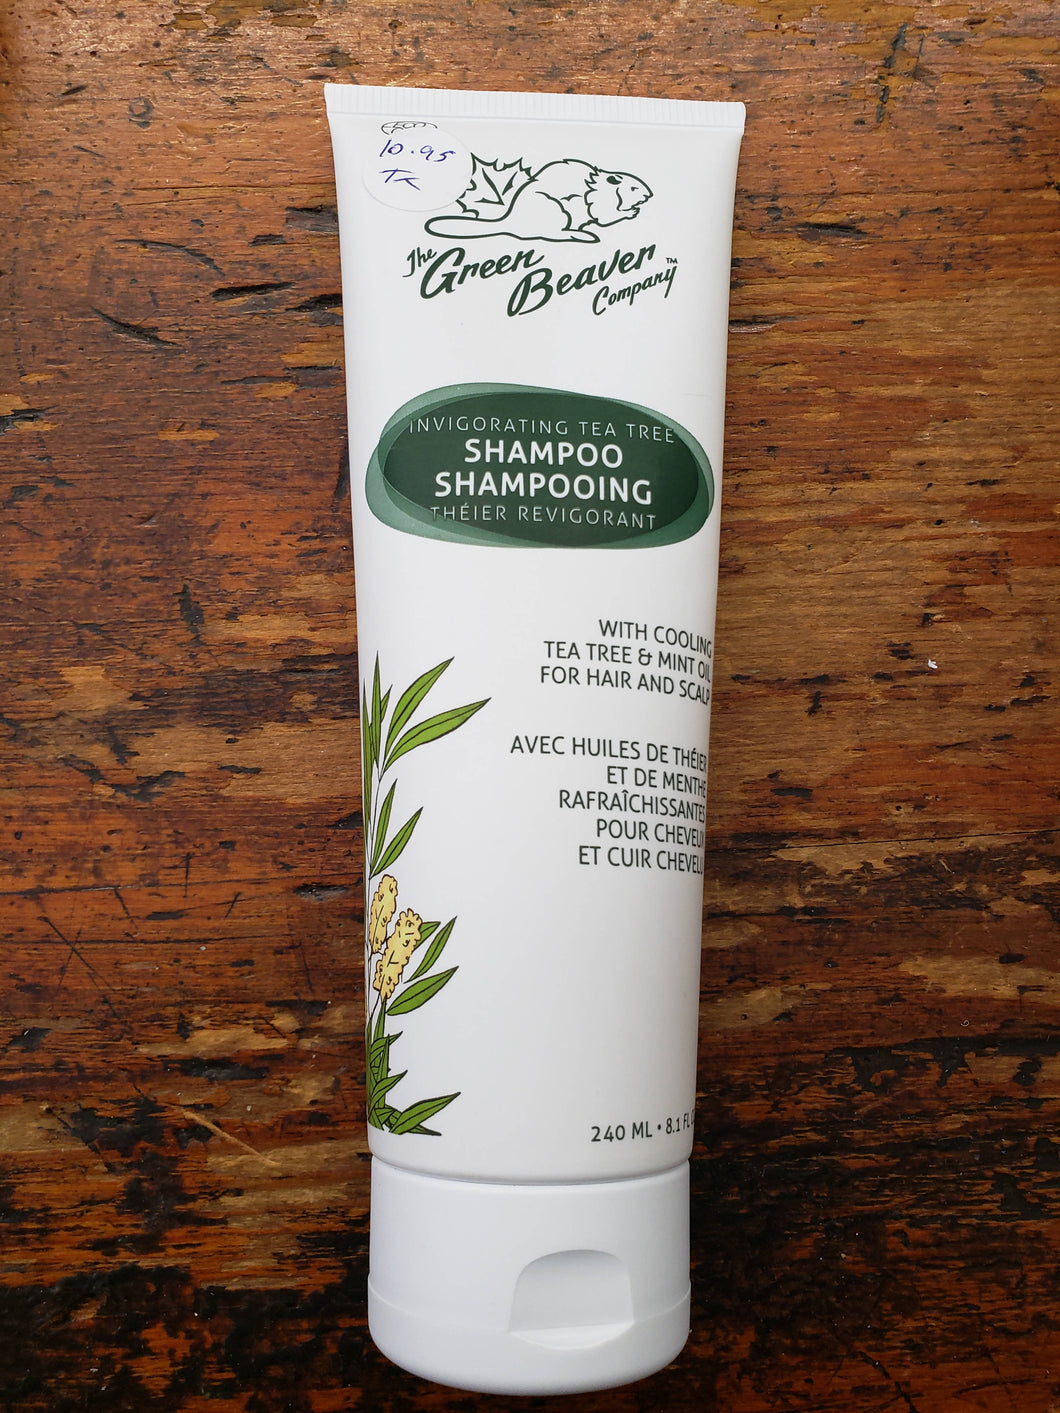 Green Beaver Shampoo (Tea Tree)